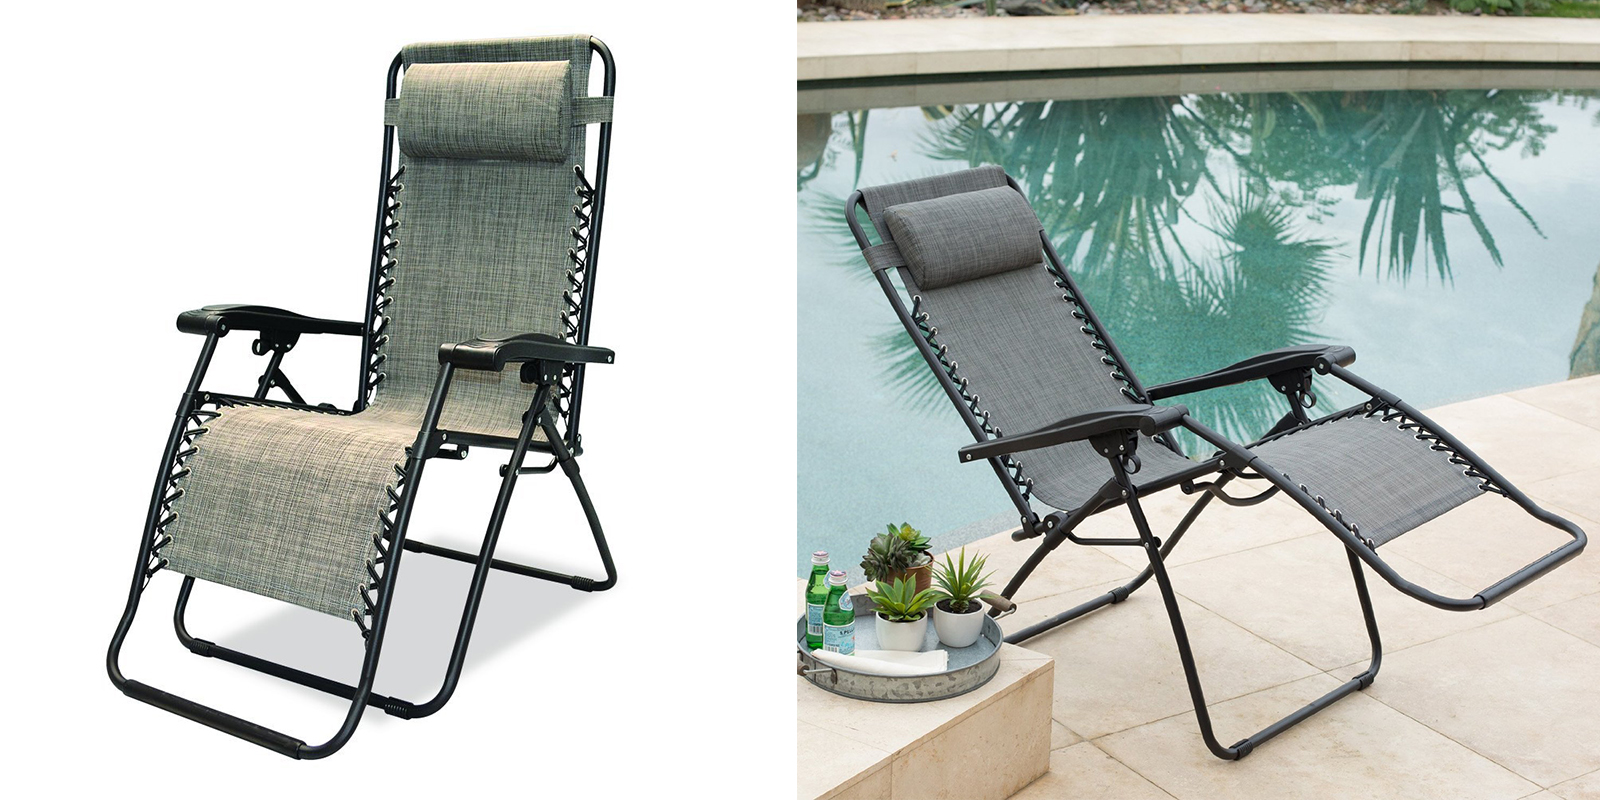 Patio Chair - Zero Gravity Chair